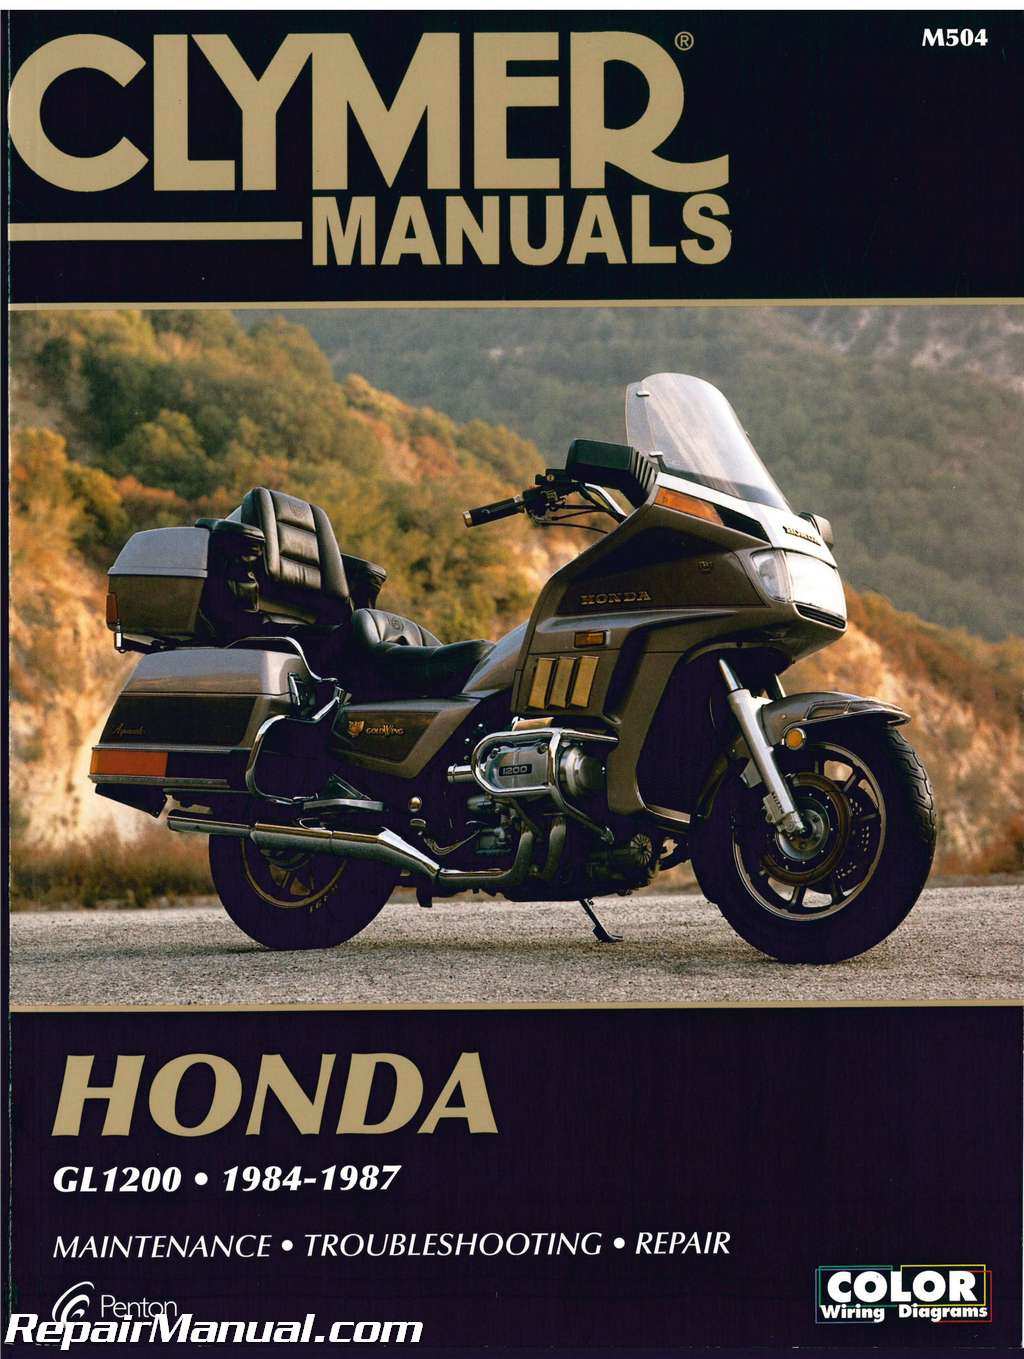 hight resolution of honda gl1200 gold wing motorcycle repair manual 1984 1987 clymer h00990155 as well gl1500 circuit likewise honda goldwing gl1200 wiring diagram